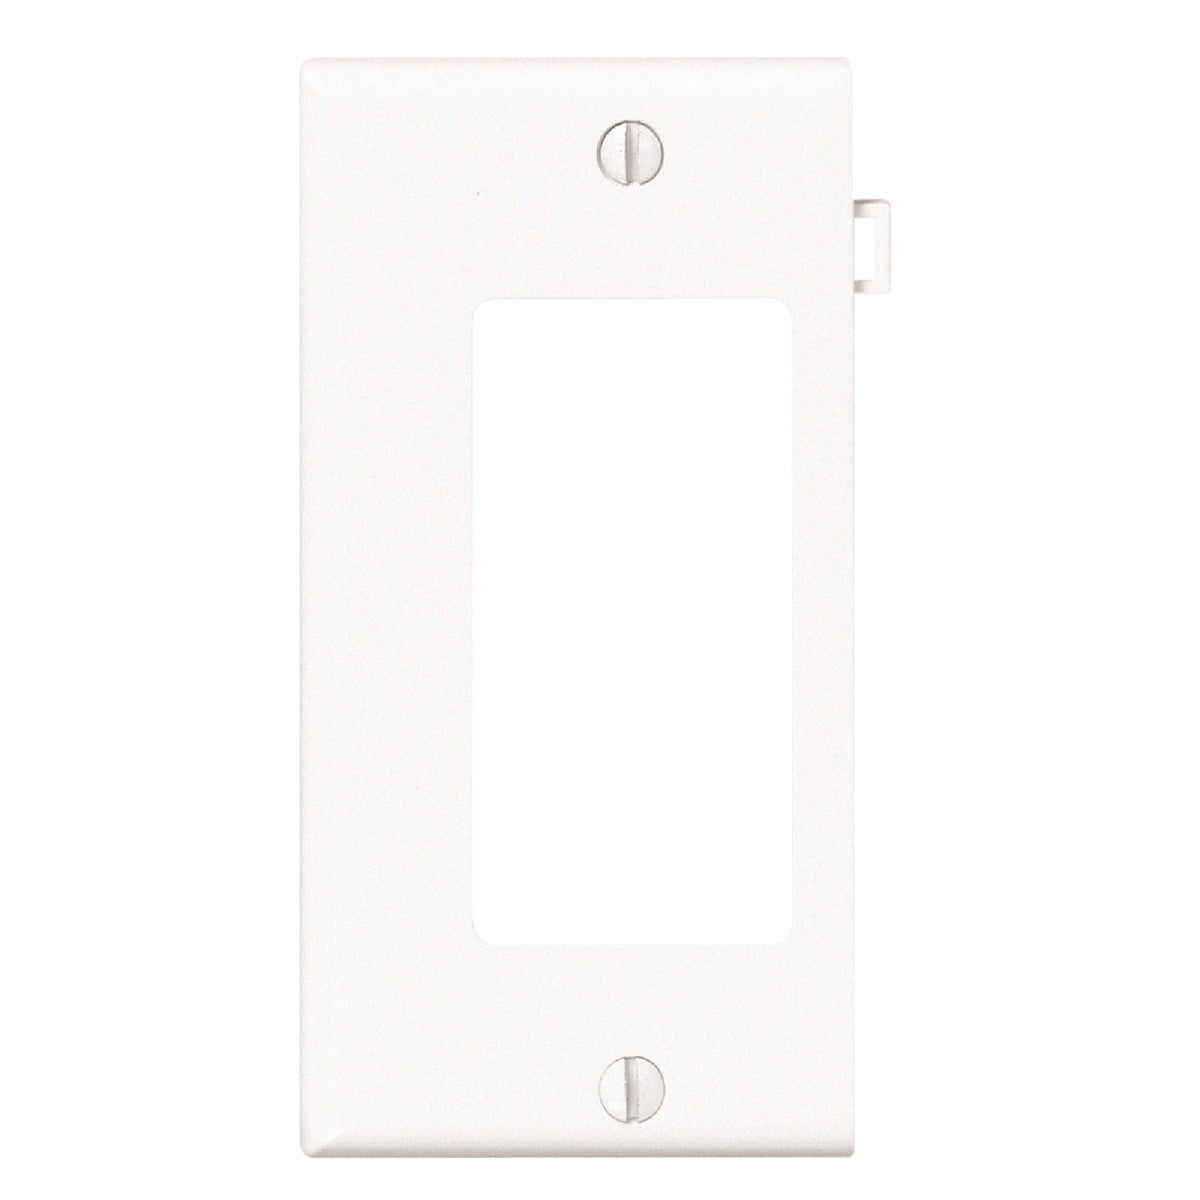 WHT GFI END PLATE - PSE26W by Leviton Mfg Co